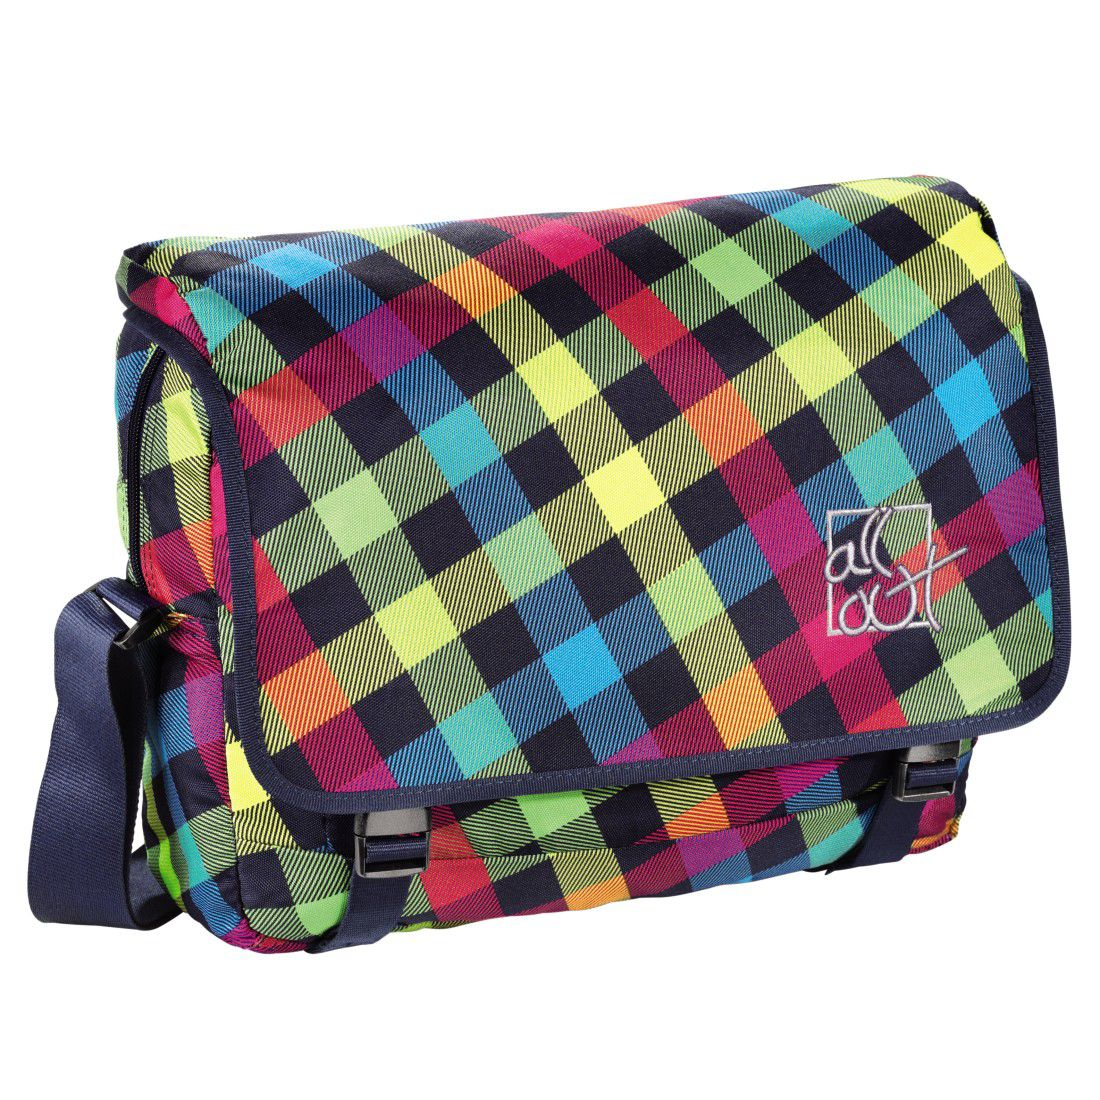 ALL OUT All Out Schultertasche Barnsley, Rainbow Check